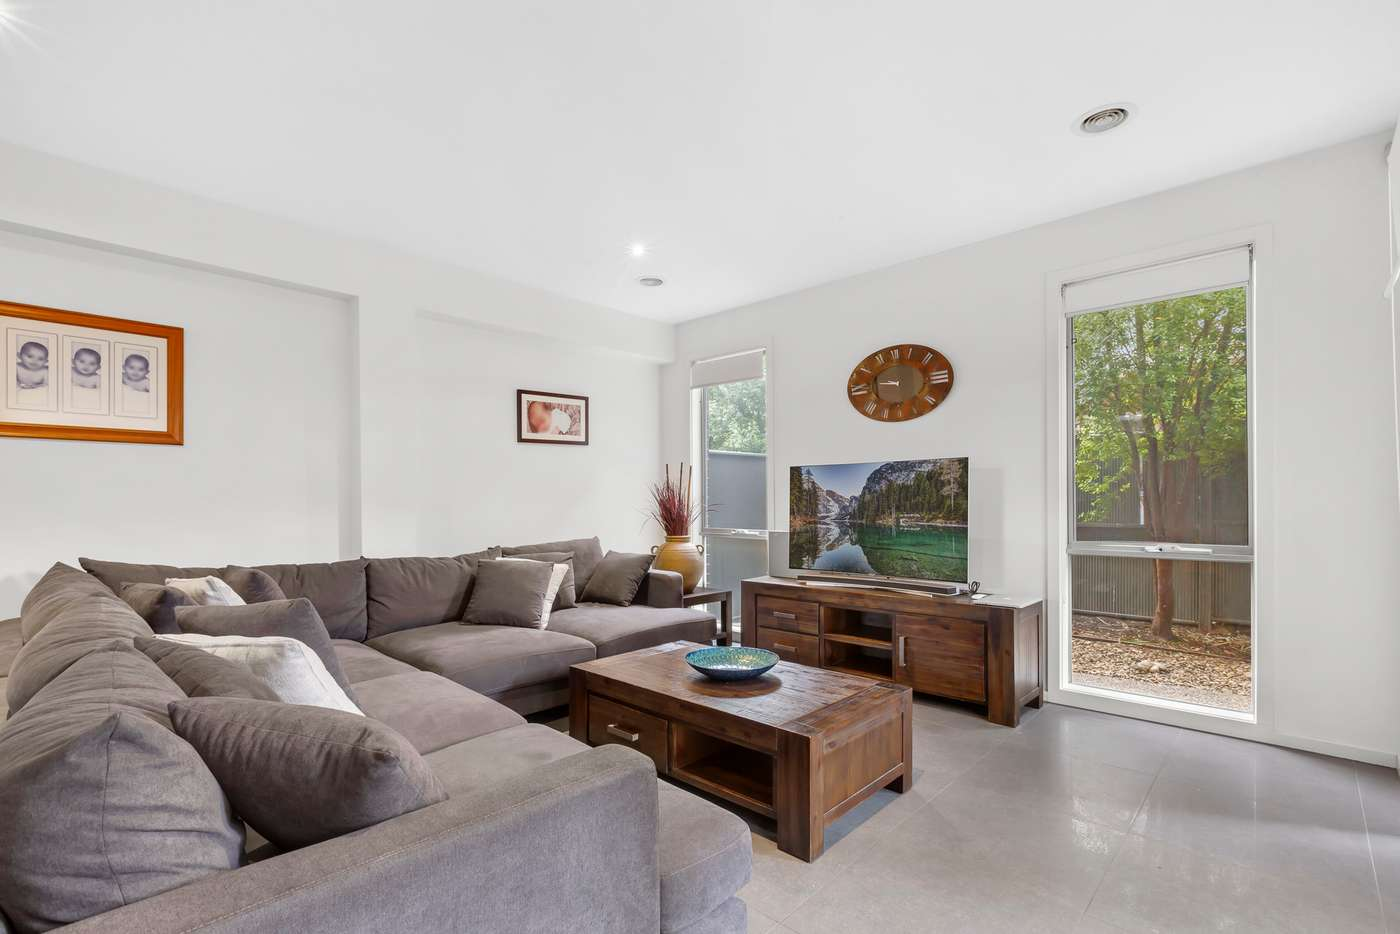 Fifth view of Homely house listing, 4 Meyers Lane, Caroline Springs VIC 3023